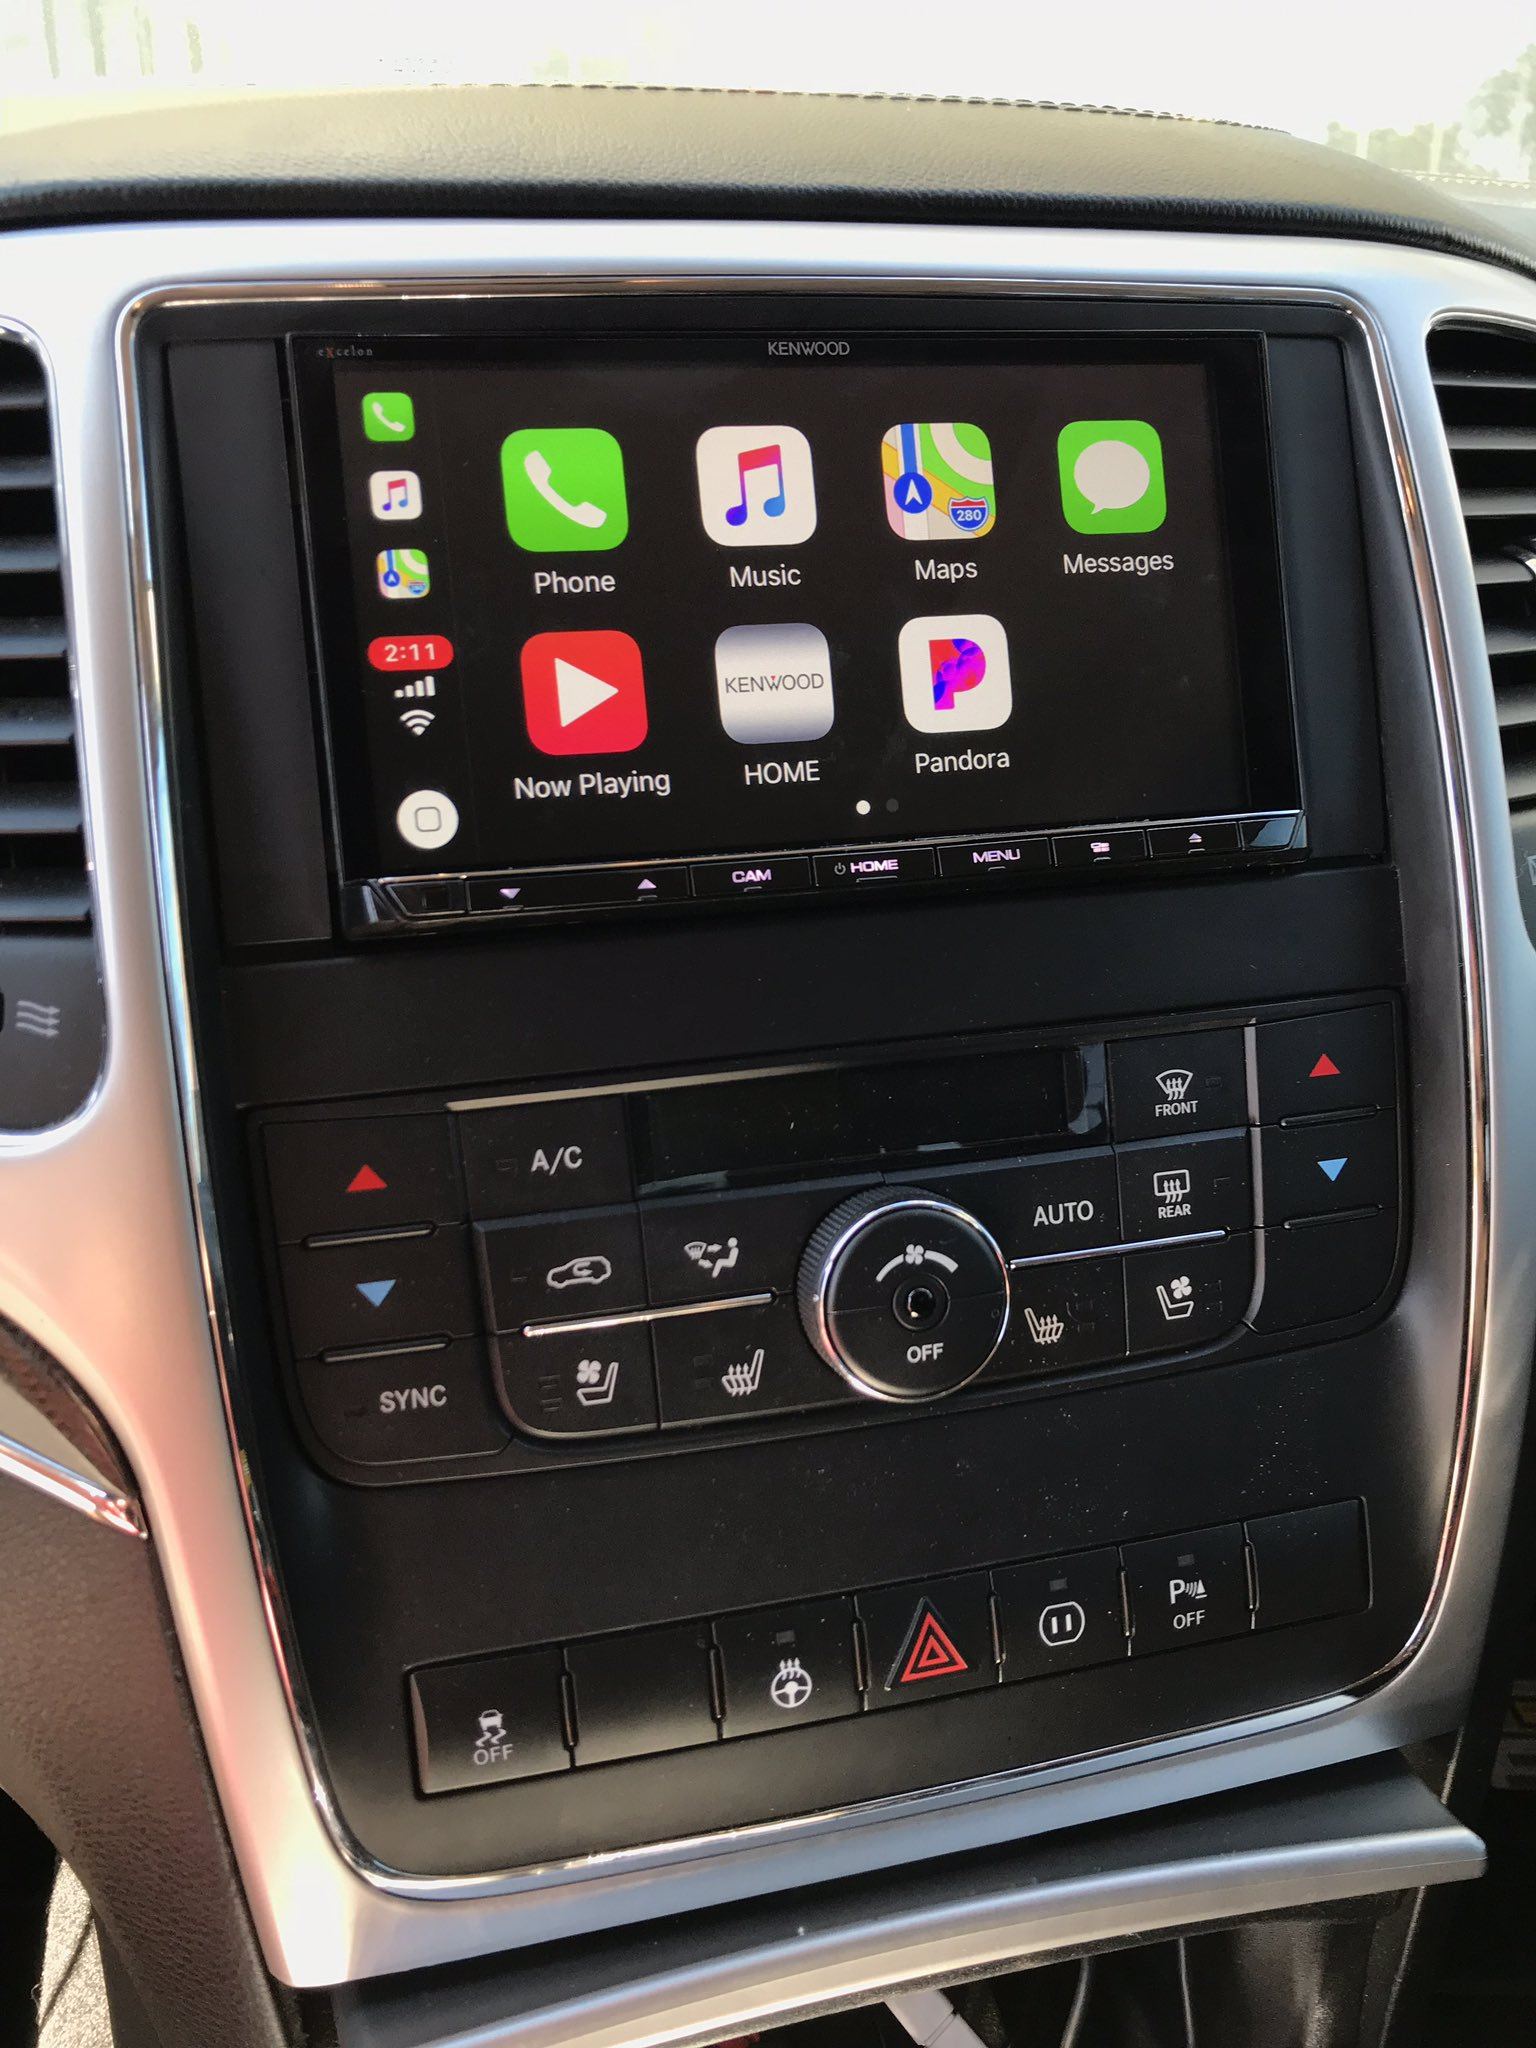 Carplay Installs Kenwood Excelon Ddx 9905s In A 2012 Jeep Grand